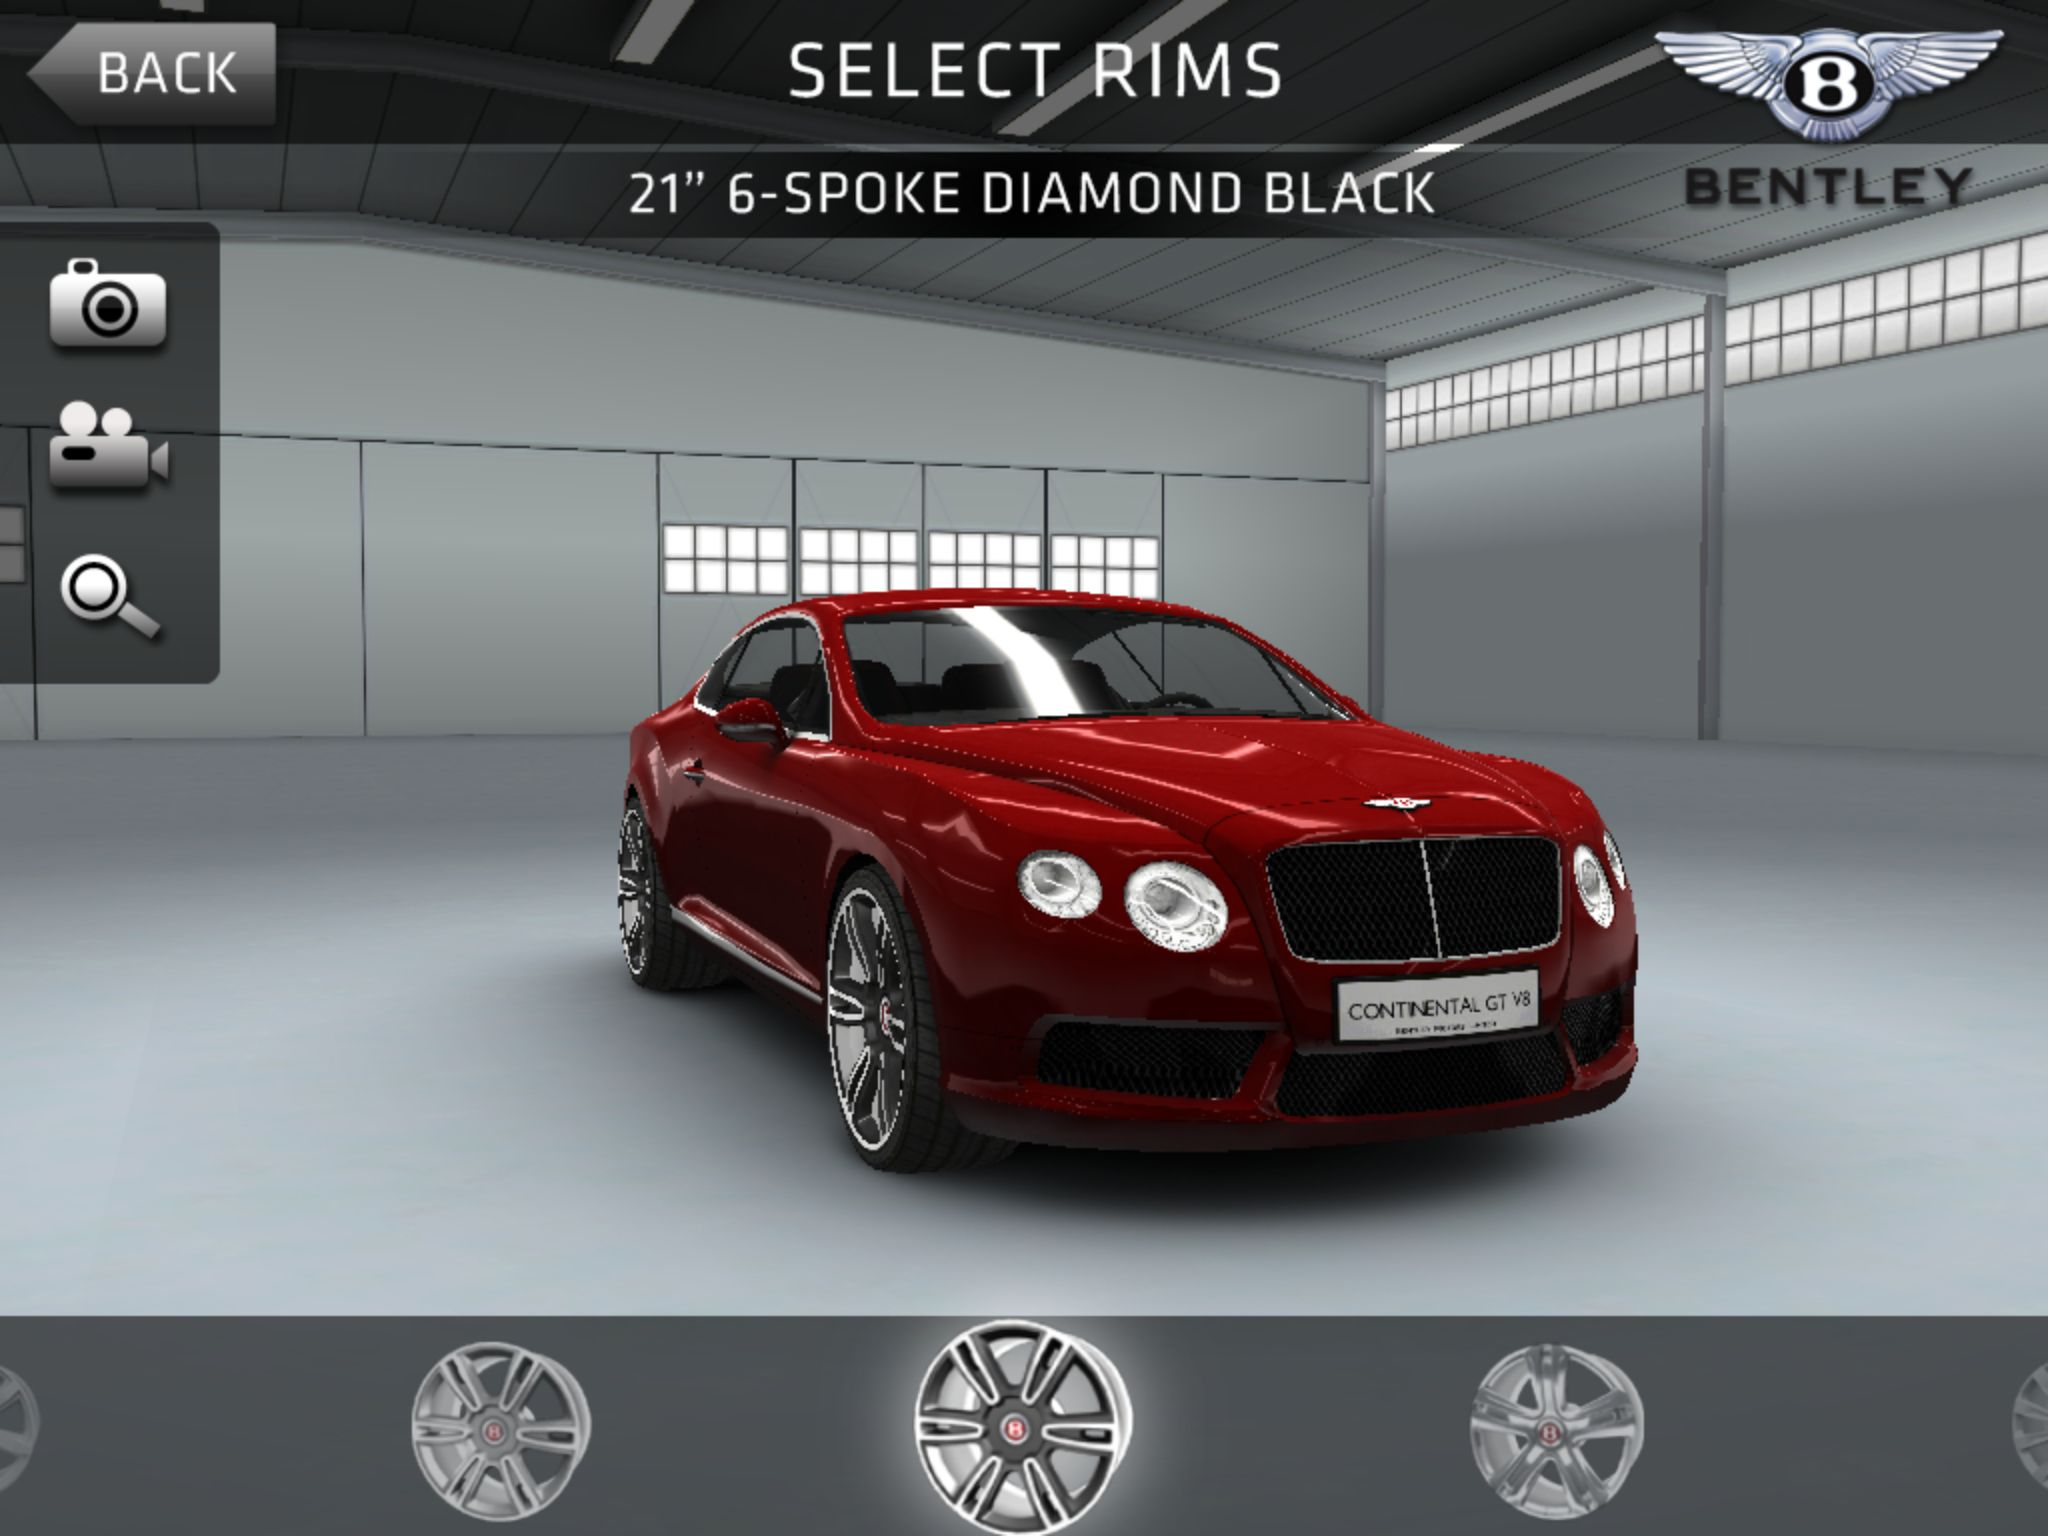 Twin-turbo-powered Bentley Continental GT V8 speeds into free iOS racer Sports Car Challenge